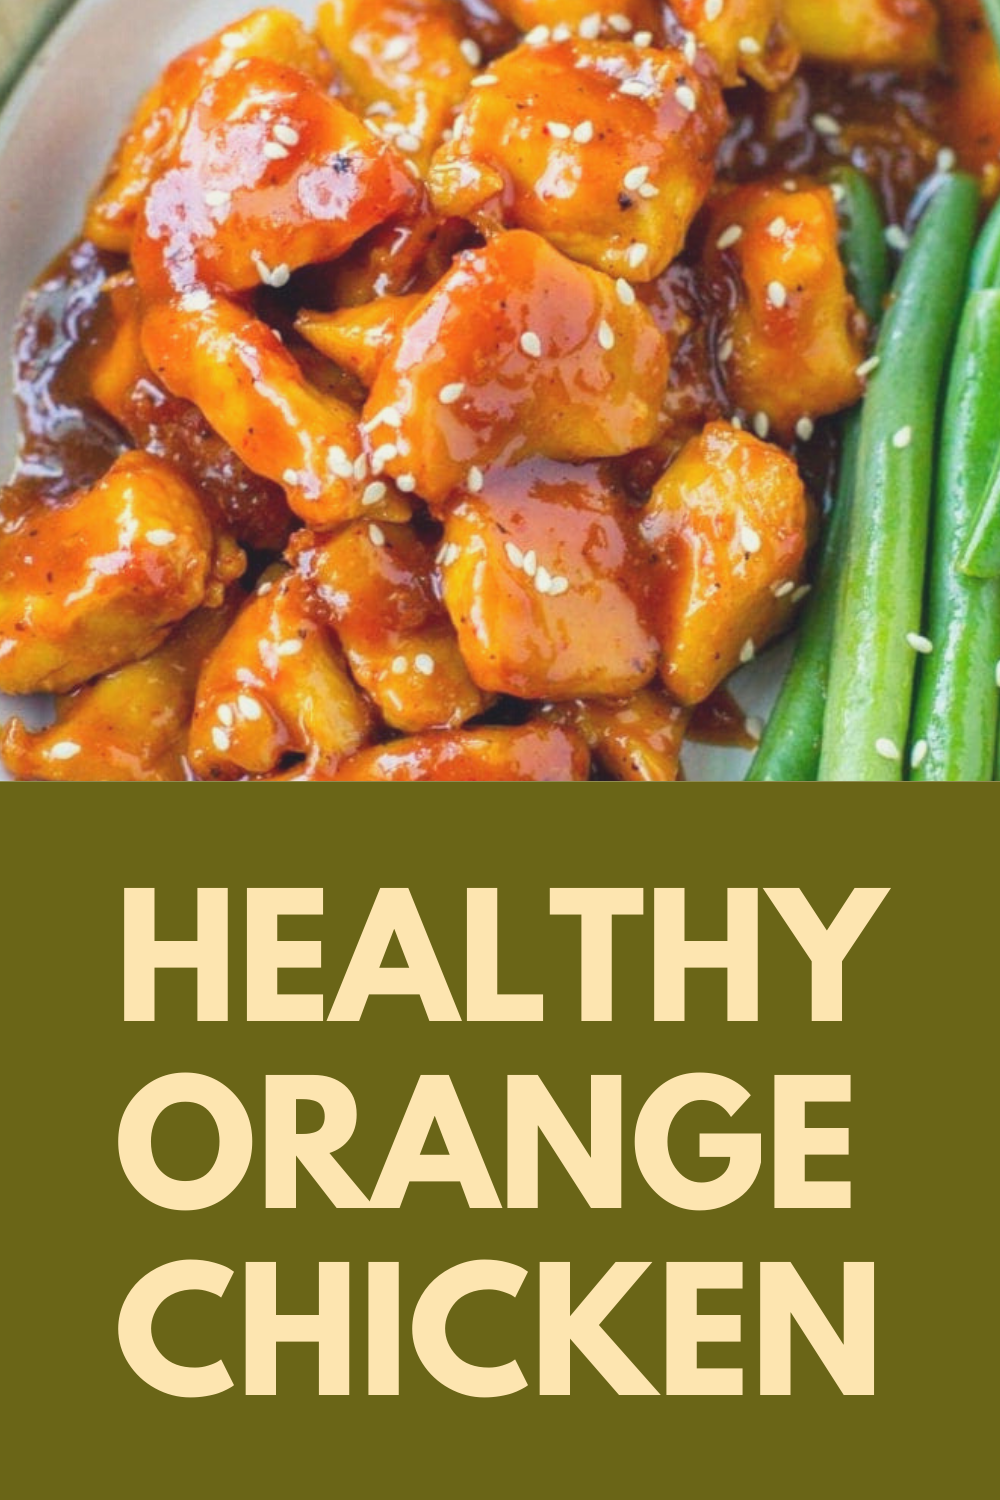 Healthy Orange Chicken Orange Shrimp Mandarin Orange Recipes Orange Chicken With Ora In 2020 Baked Orange Chicken Healthy Orange Chicken Gluten Free Orange Chicken